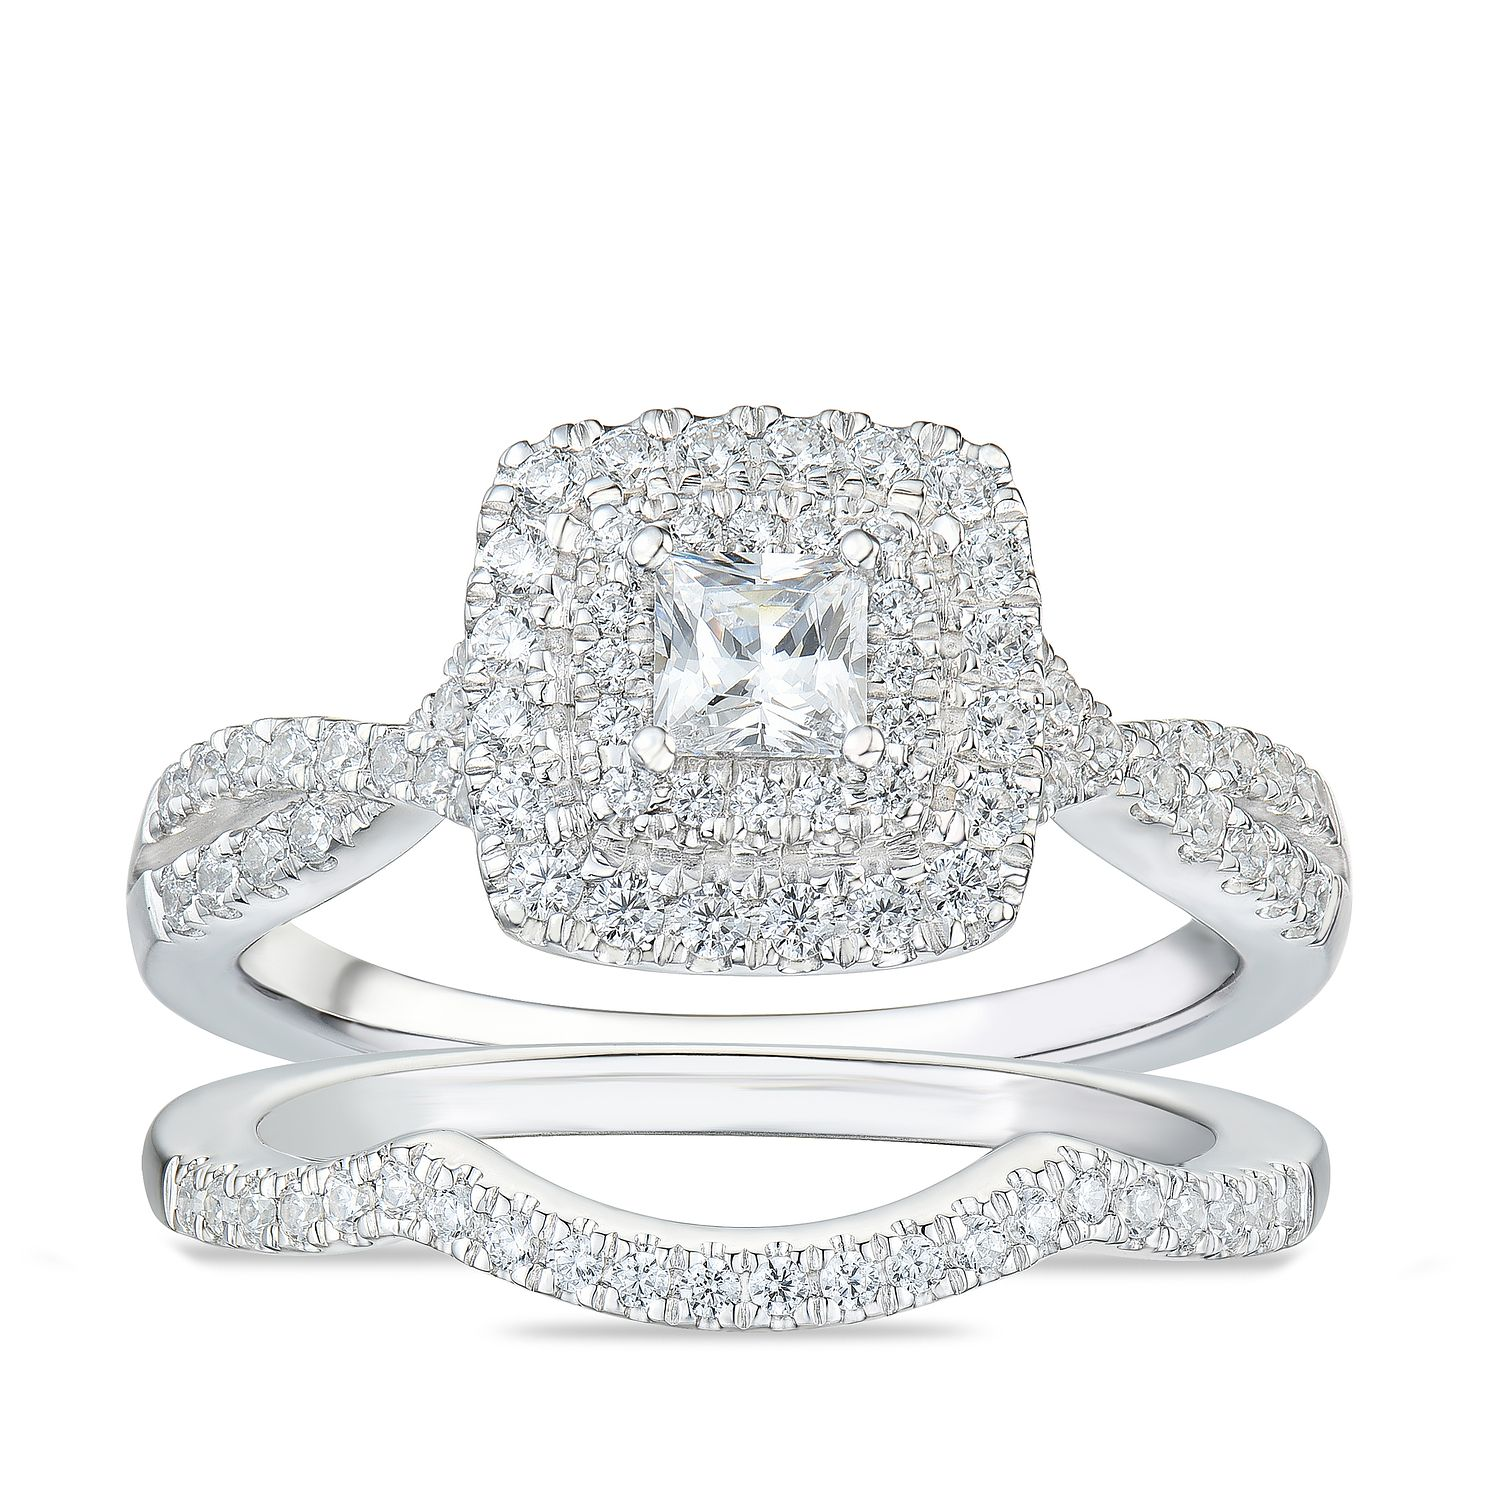 Tolkowsky 18ct White Gold 3/4ct Diamond Cushion Bridal Set - Product number 4177436